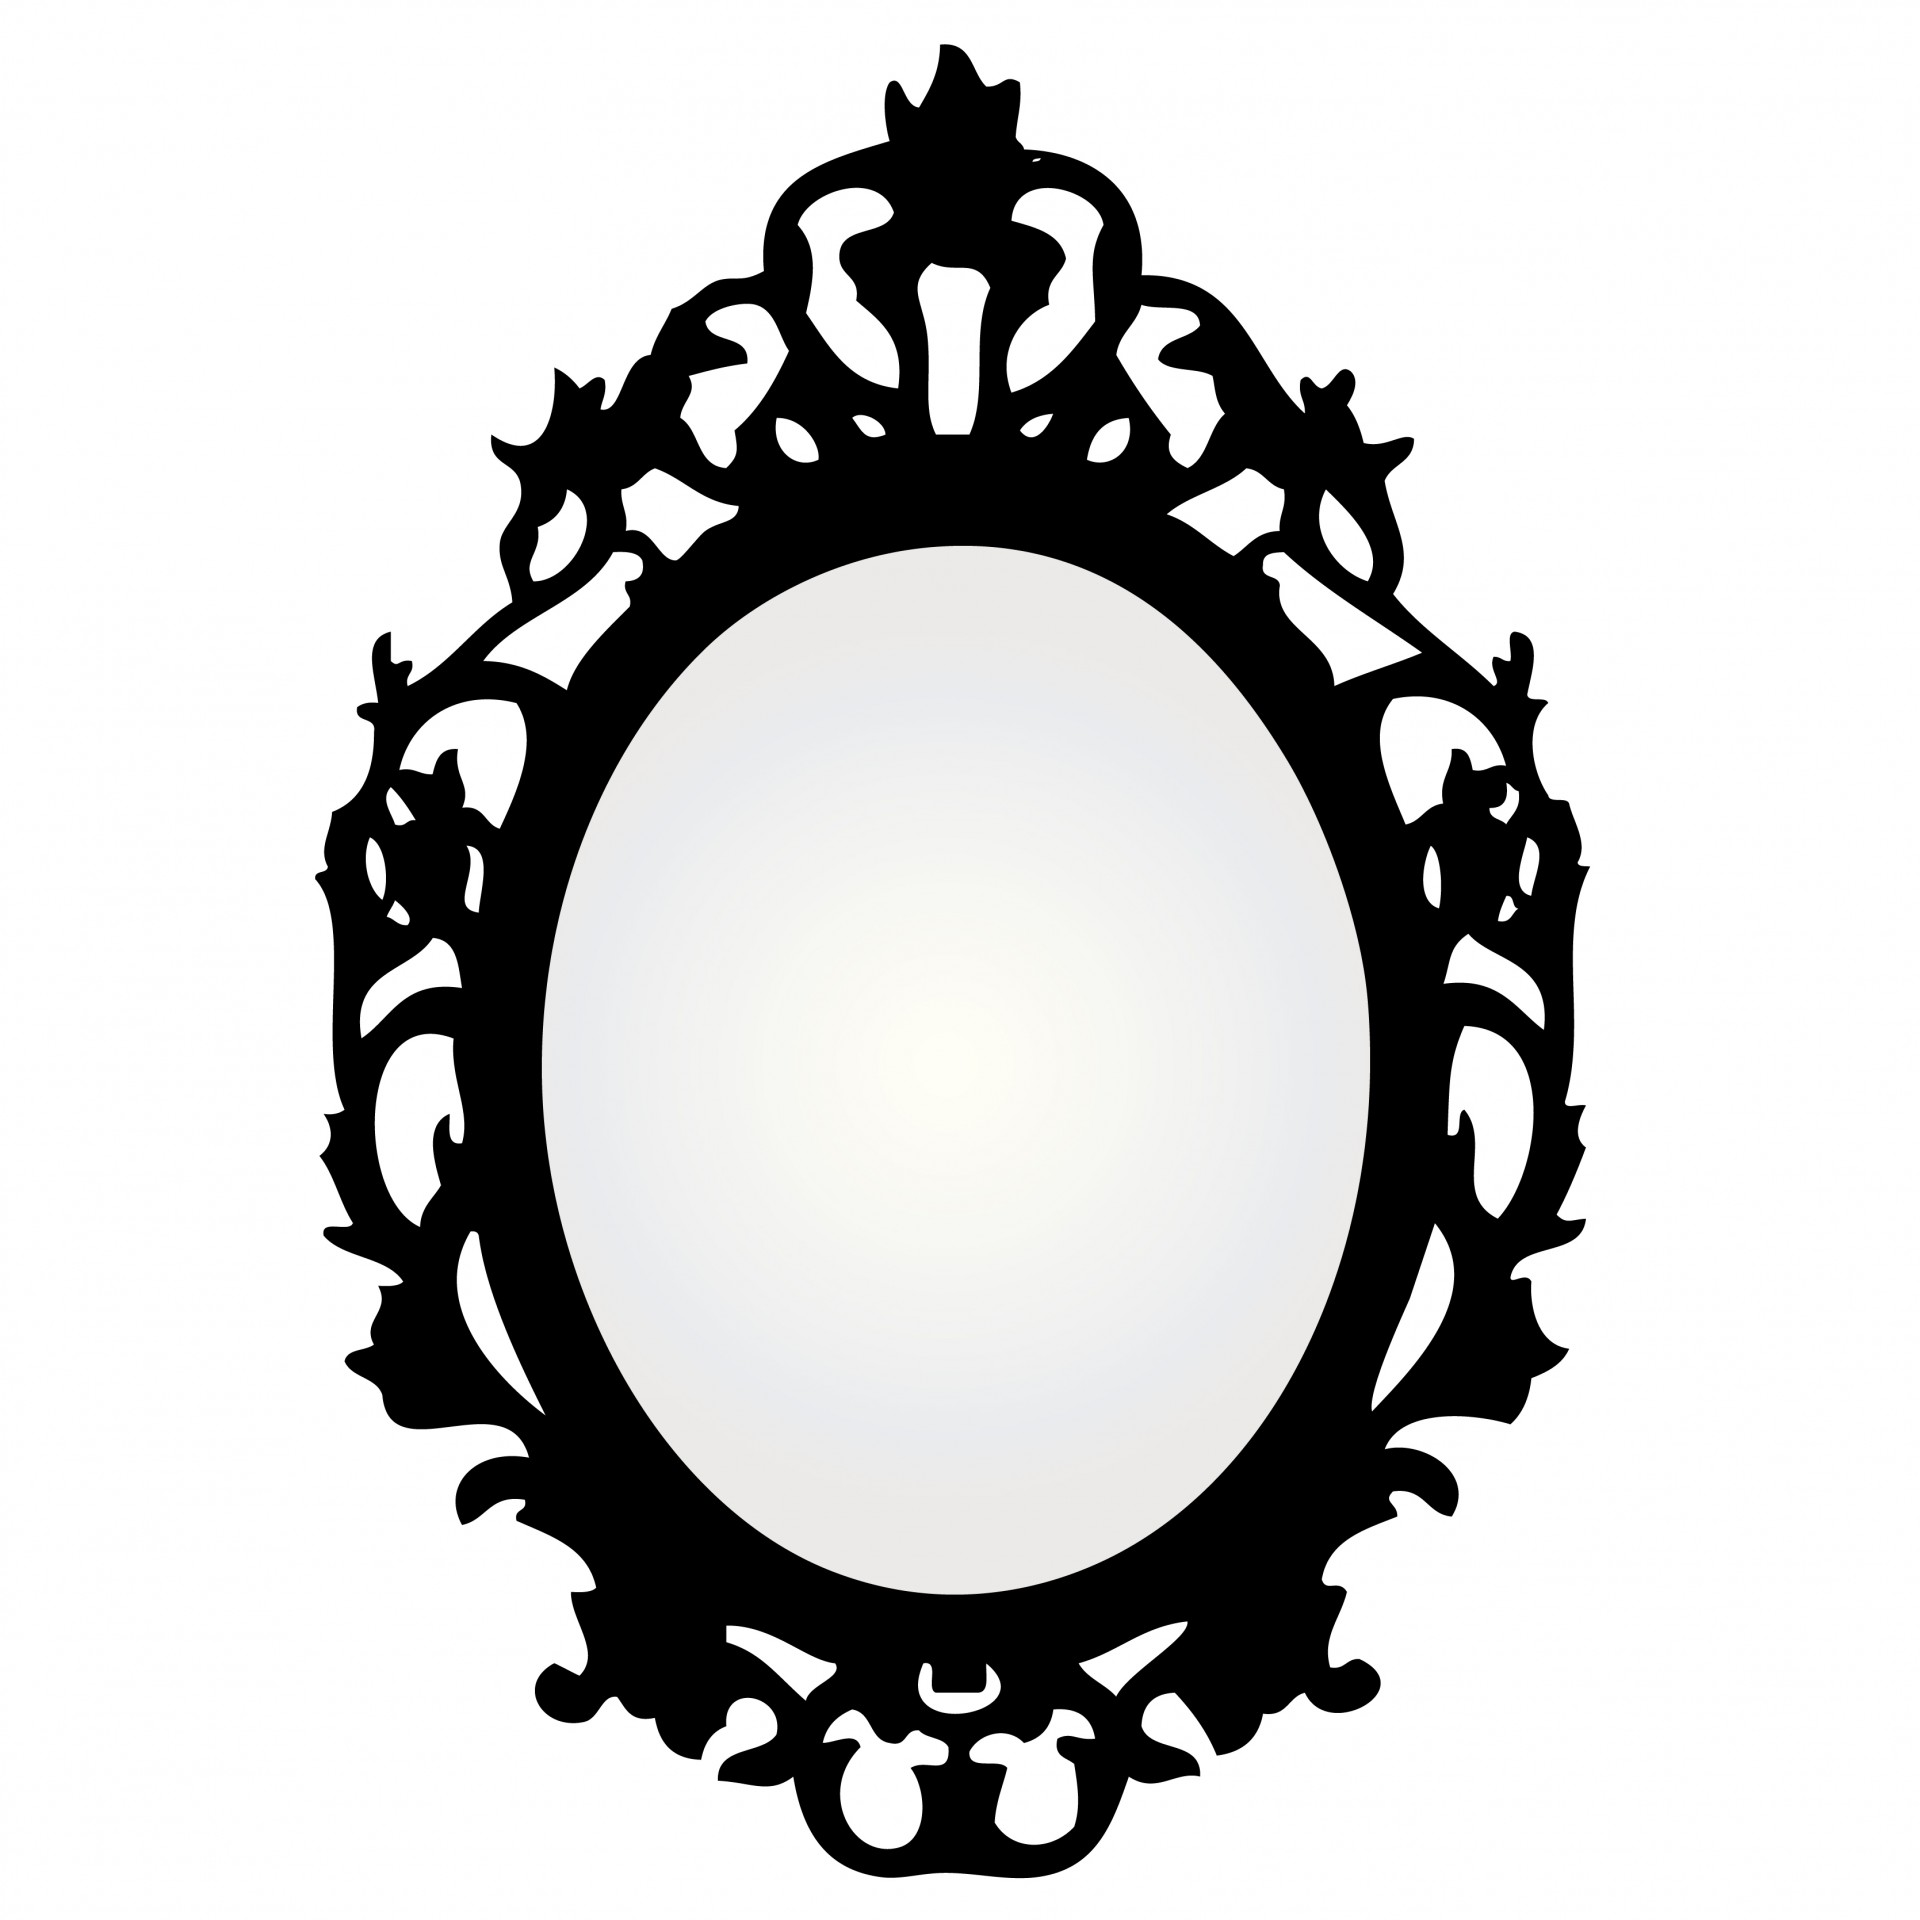 Mirror With Ornate Frame Free Stock Photo - Public Domain Pictures